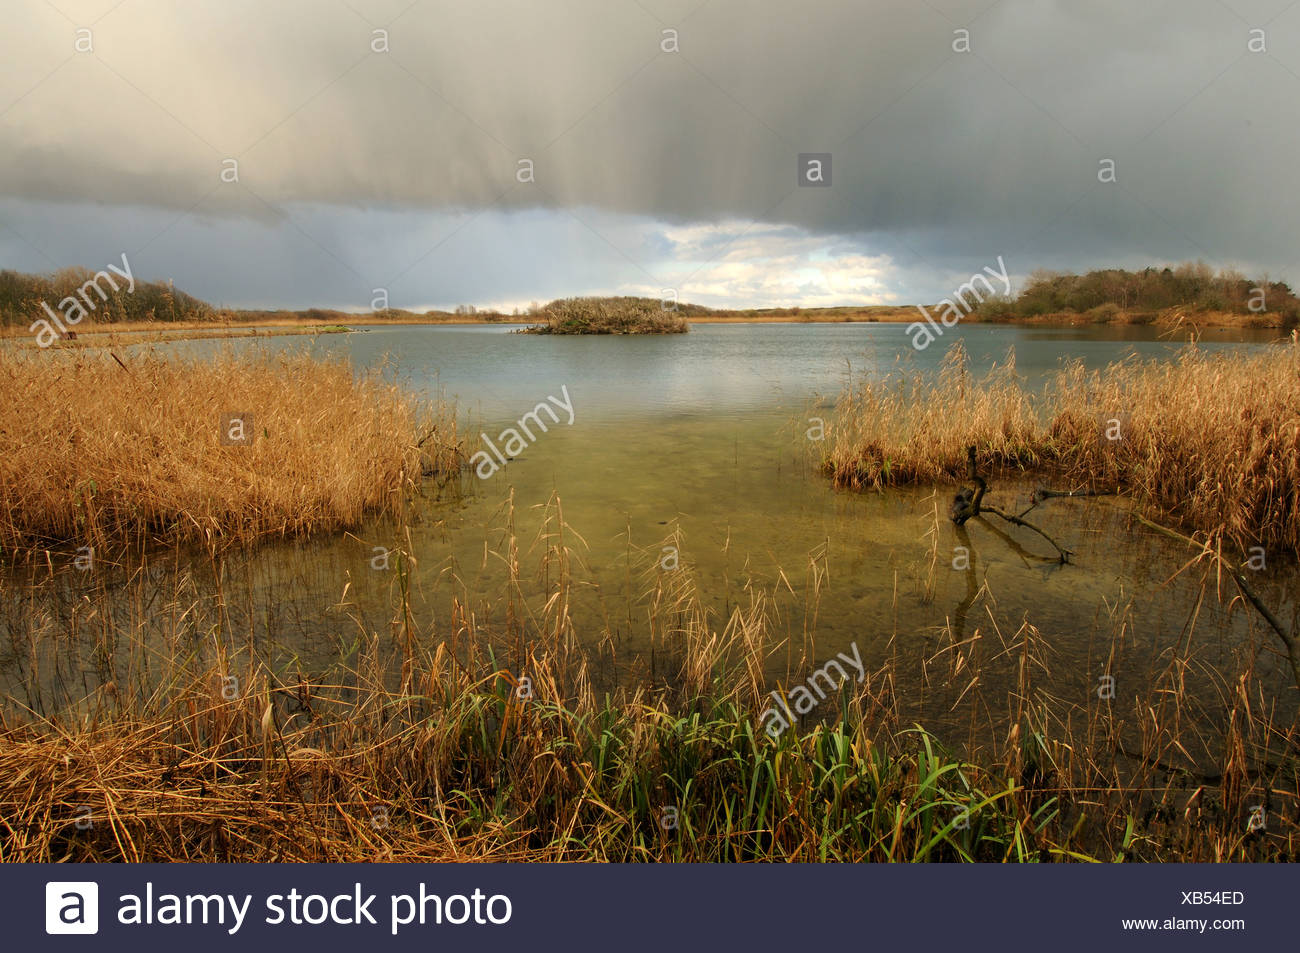 Dikke wolkenlucht boven eiland in duinmeer;Thick clouds above island in lake - Stock Image